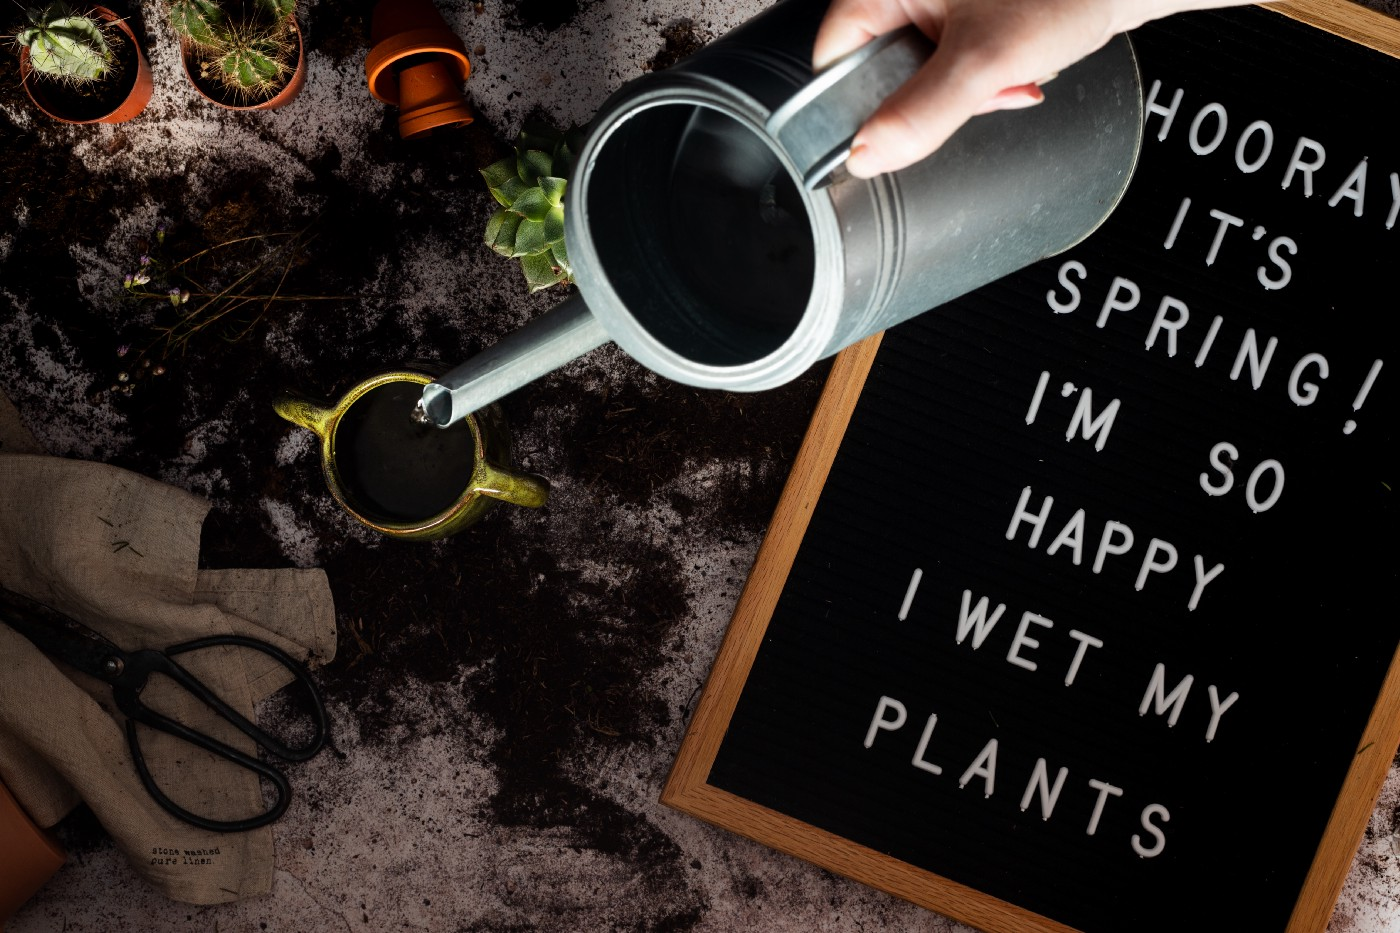 "Watering a plant from a watering can next to a sign that says ""Hooray! It's Spring! I'm so happy I wet my plants"""